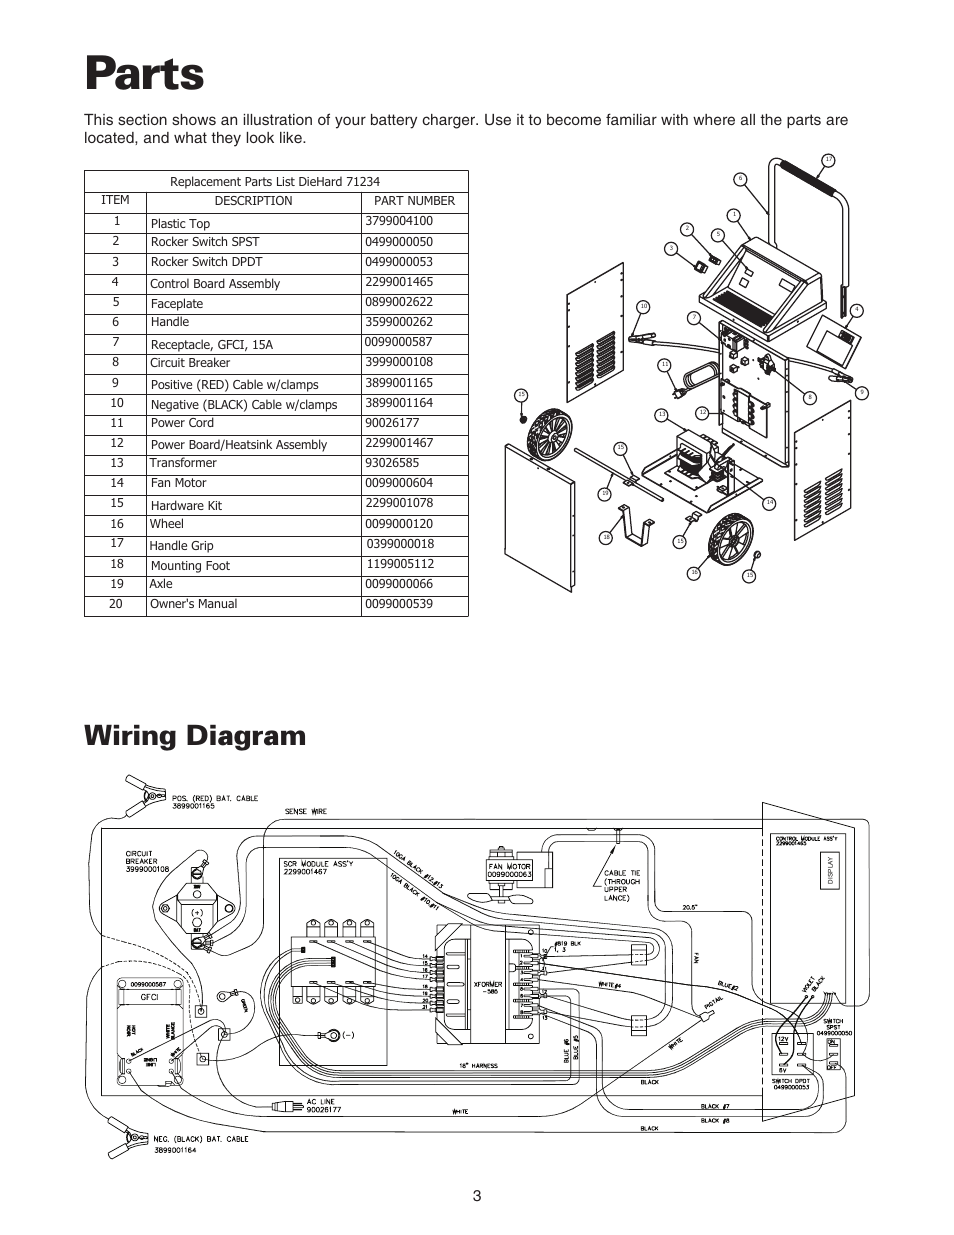 Parts Wiring Diagram Sears 20071234 User Manual Page 4 15 Motor Wire For Craftsman